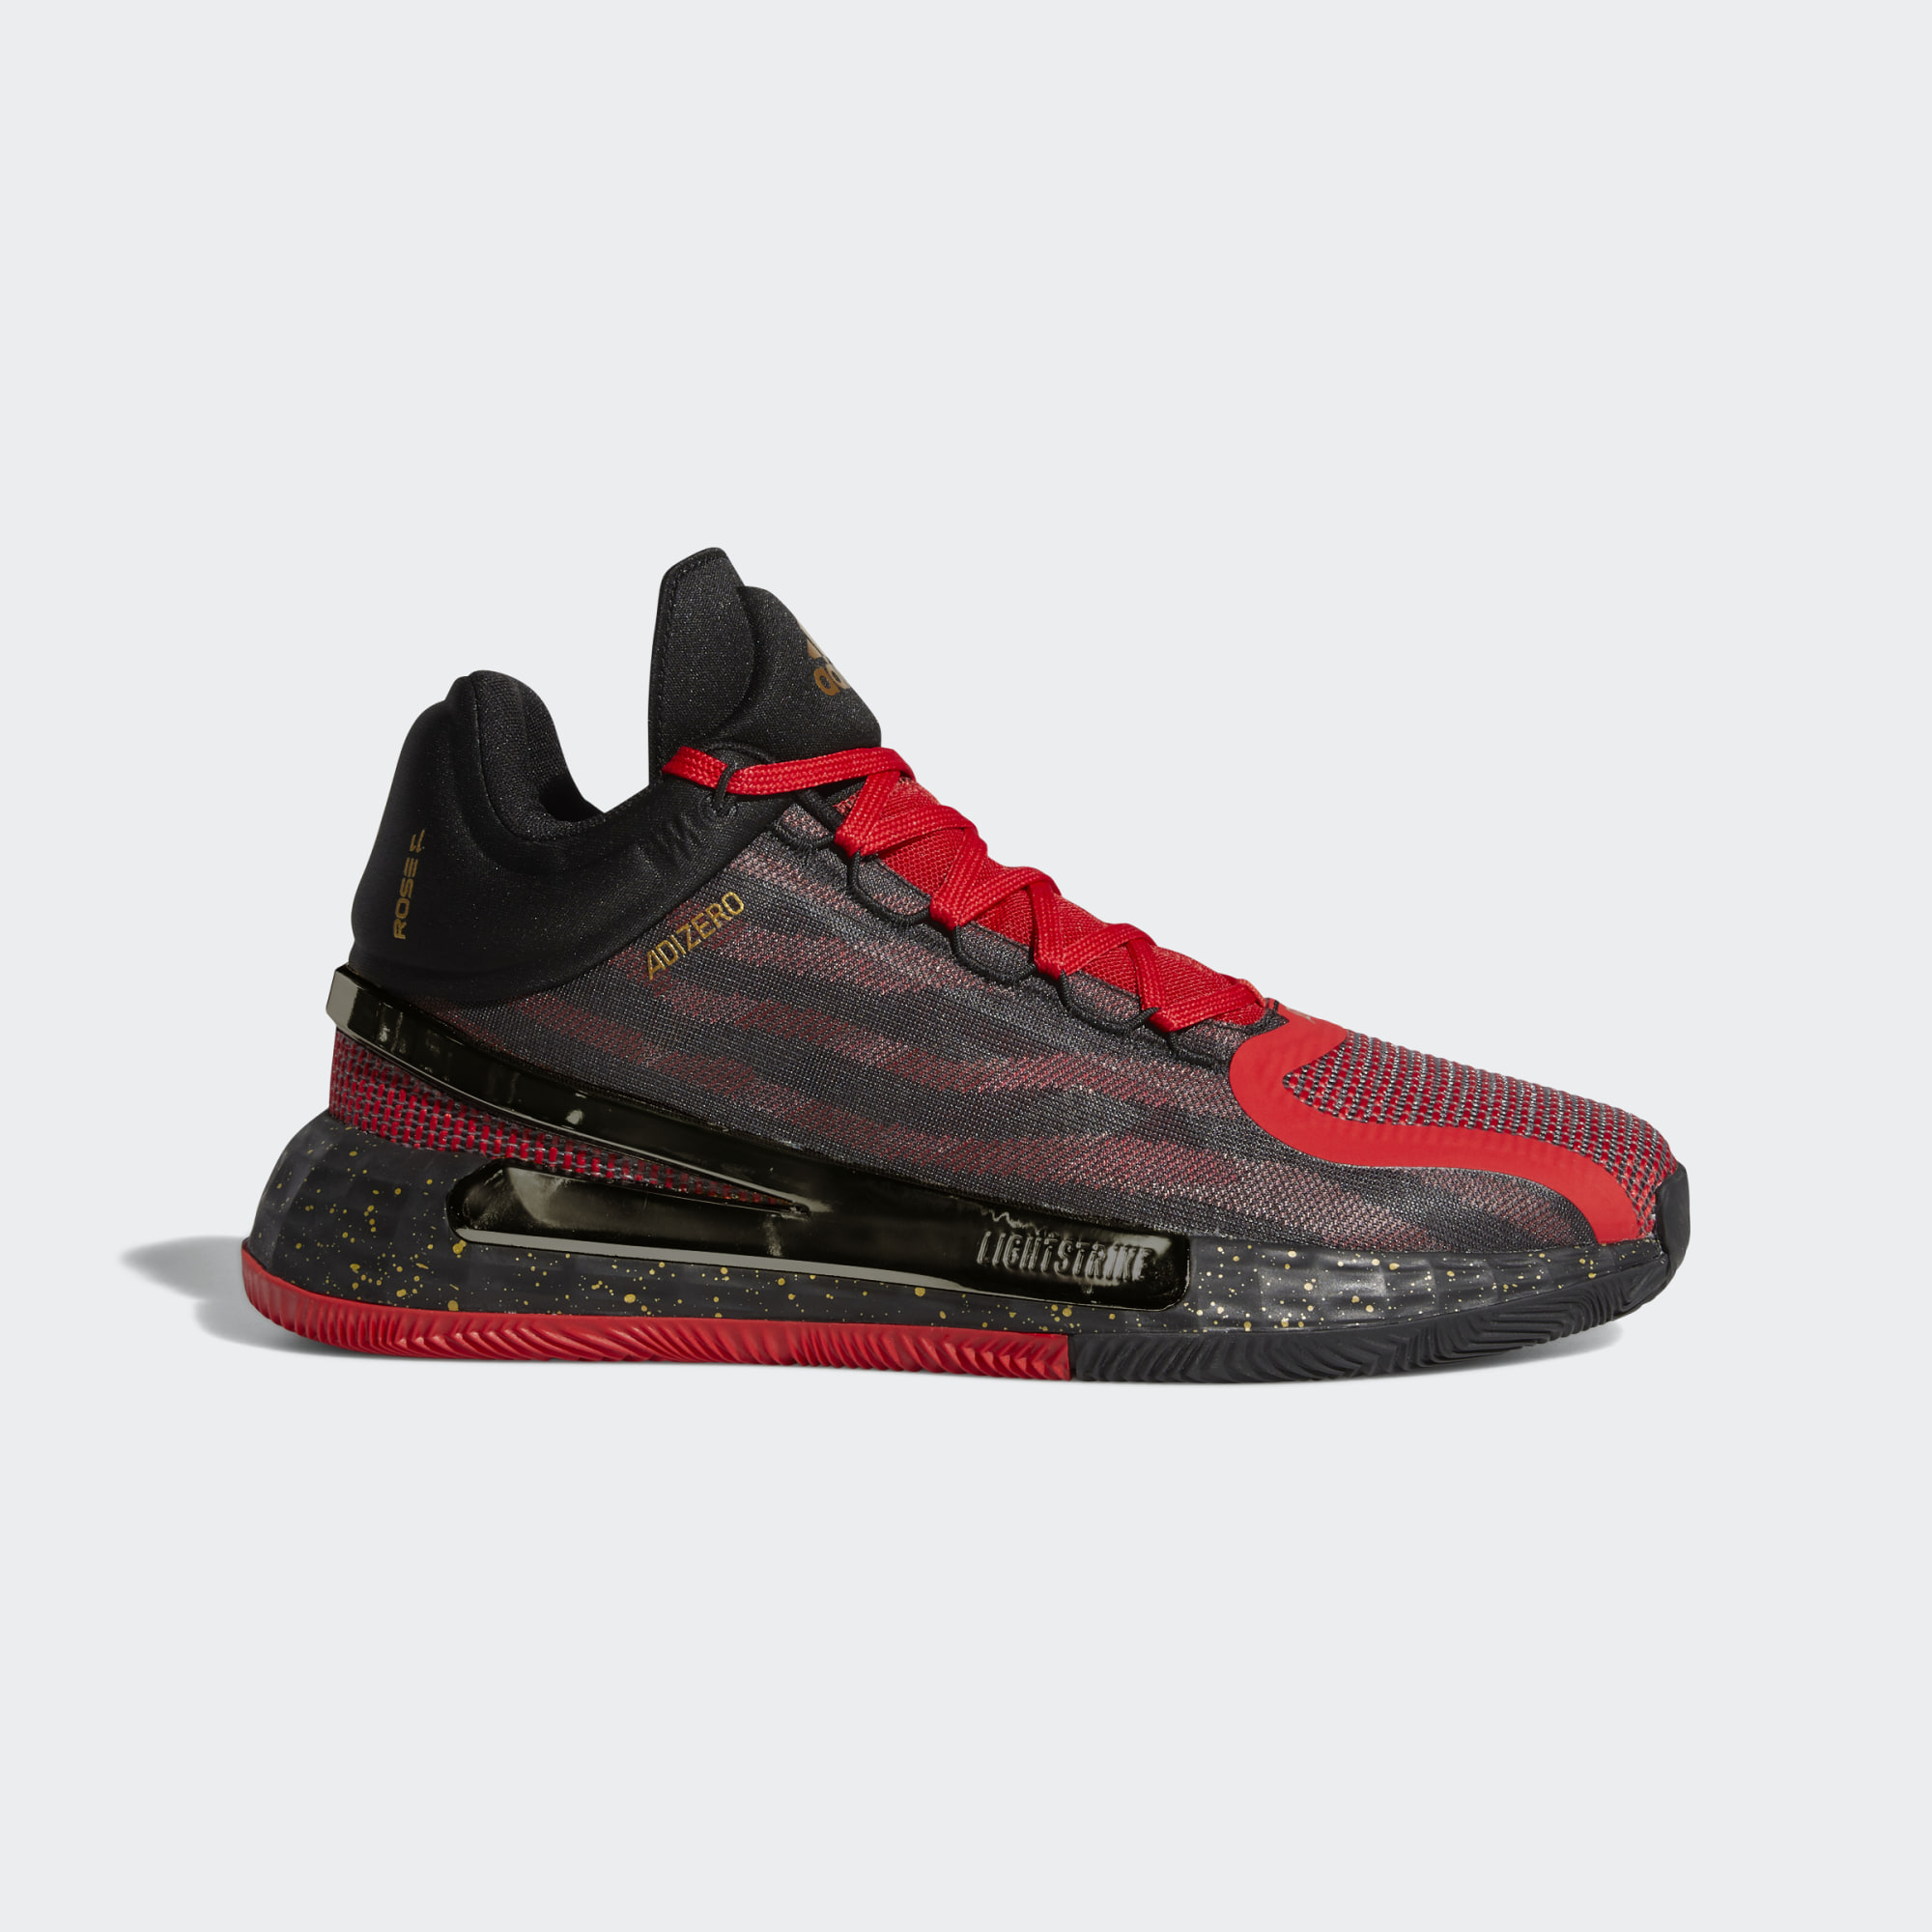 D Rose 11 Review: Side 1